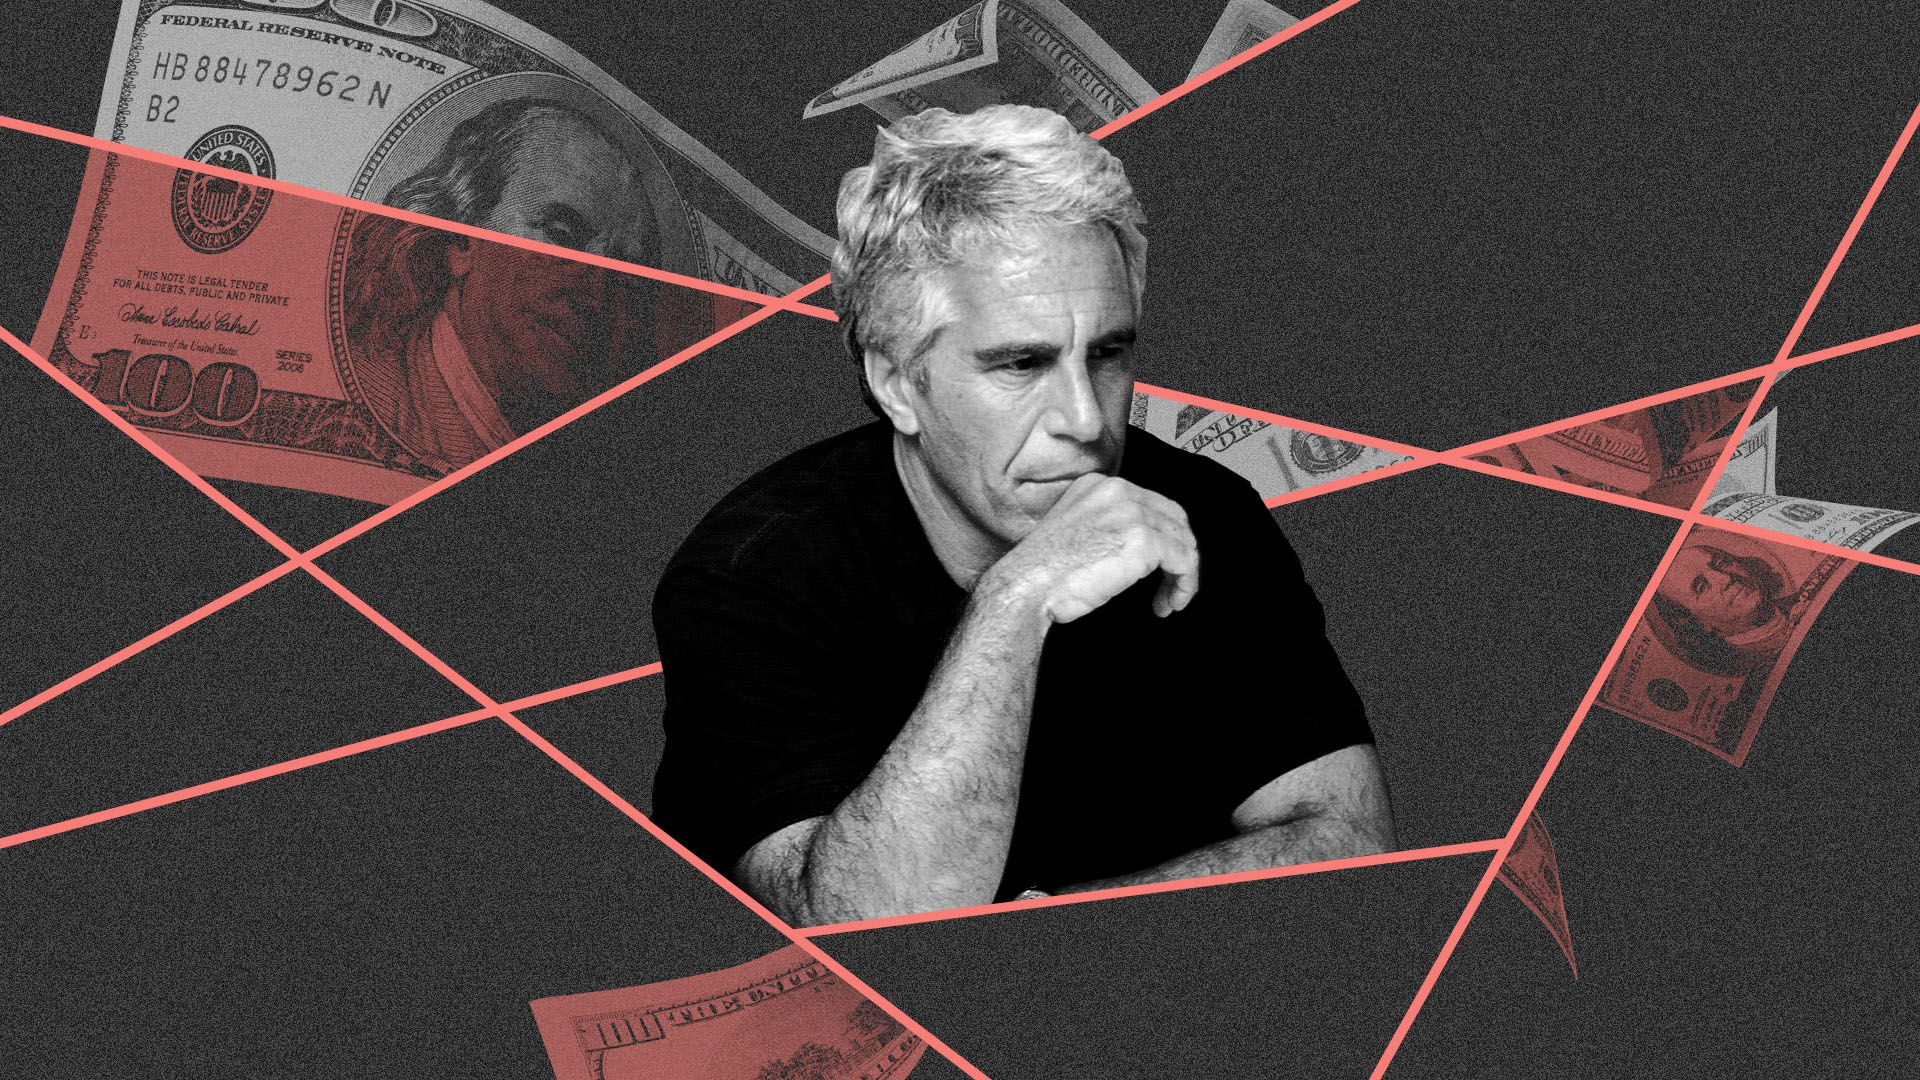 In this illustration, Jeffrey Epstein is surrounded by money